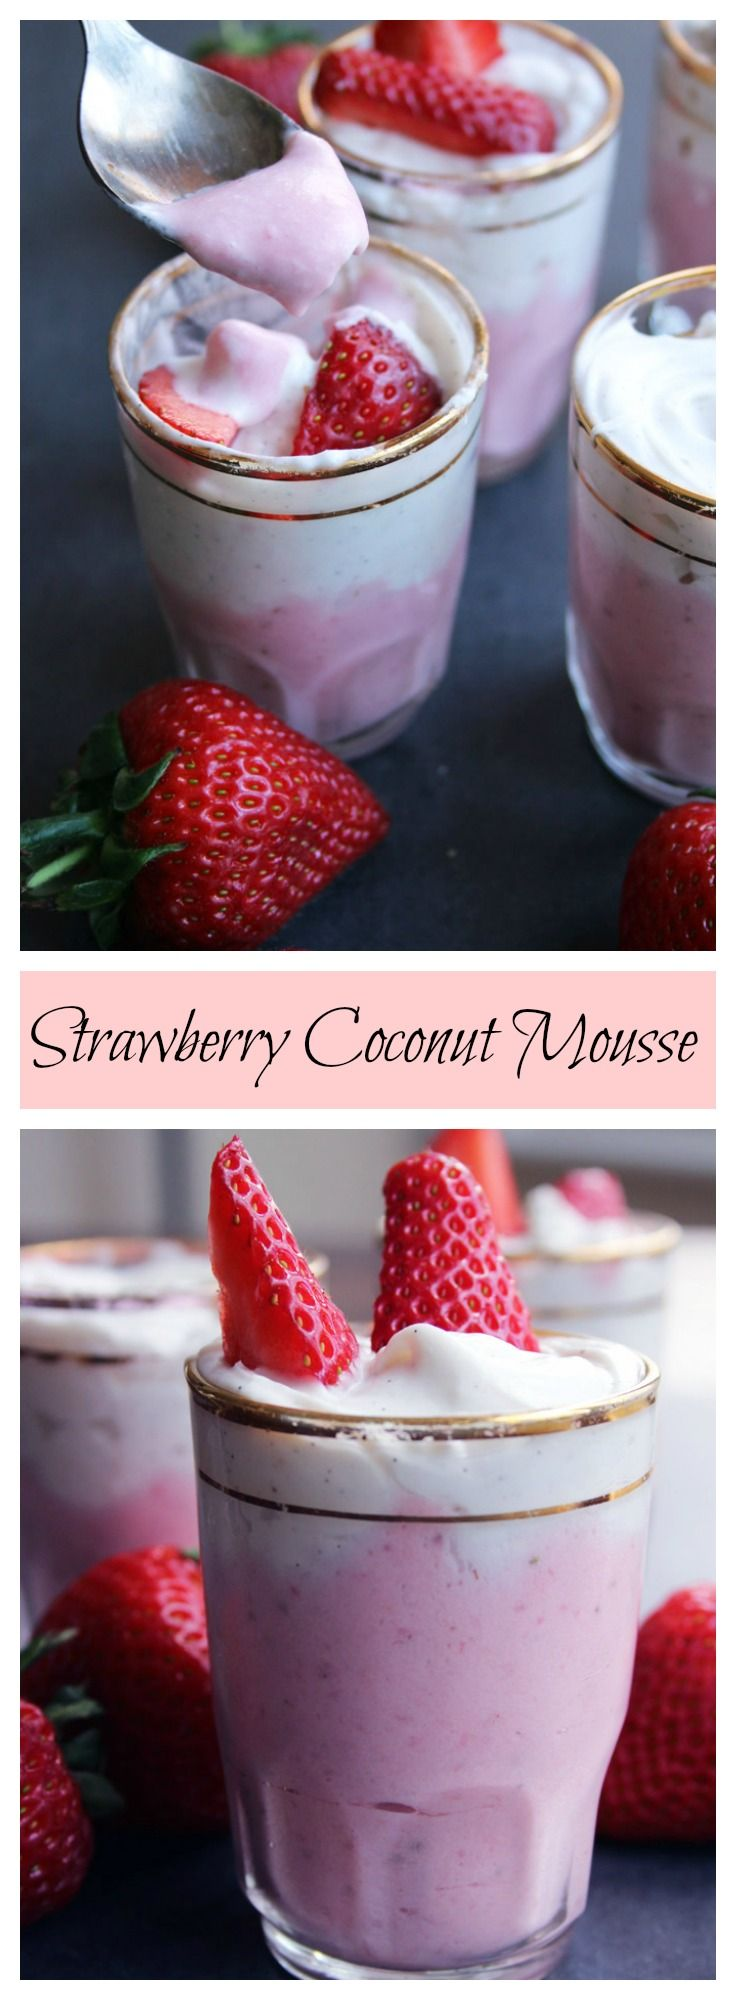 16 Irresistibly Indulgent Low Carb Coconut Dessert Recipes